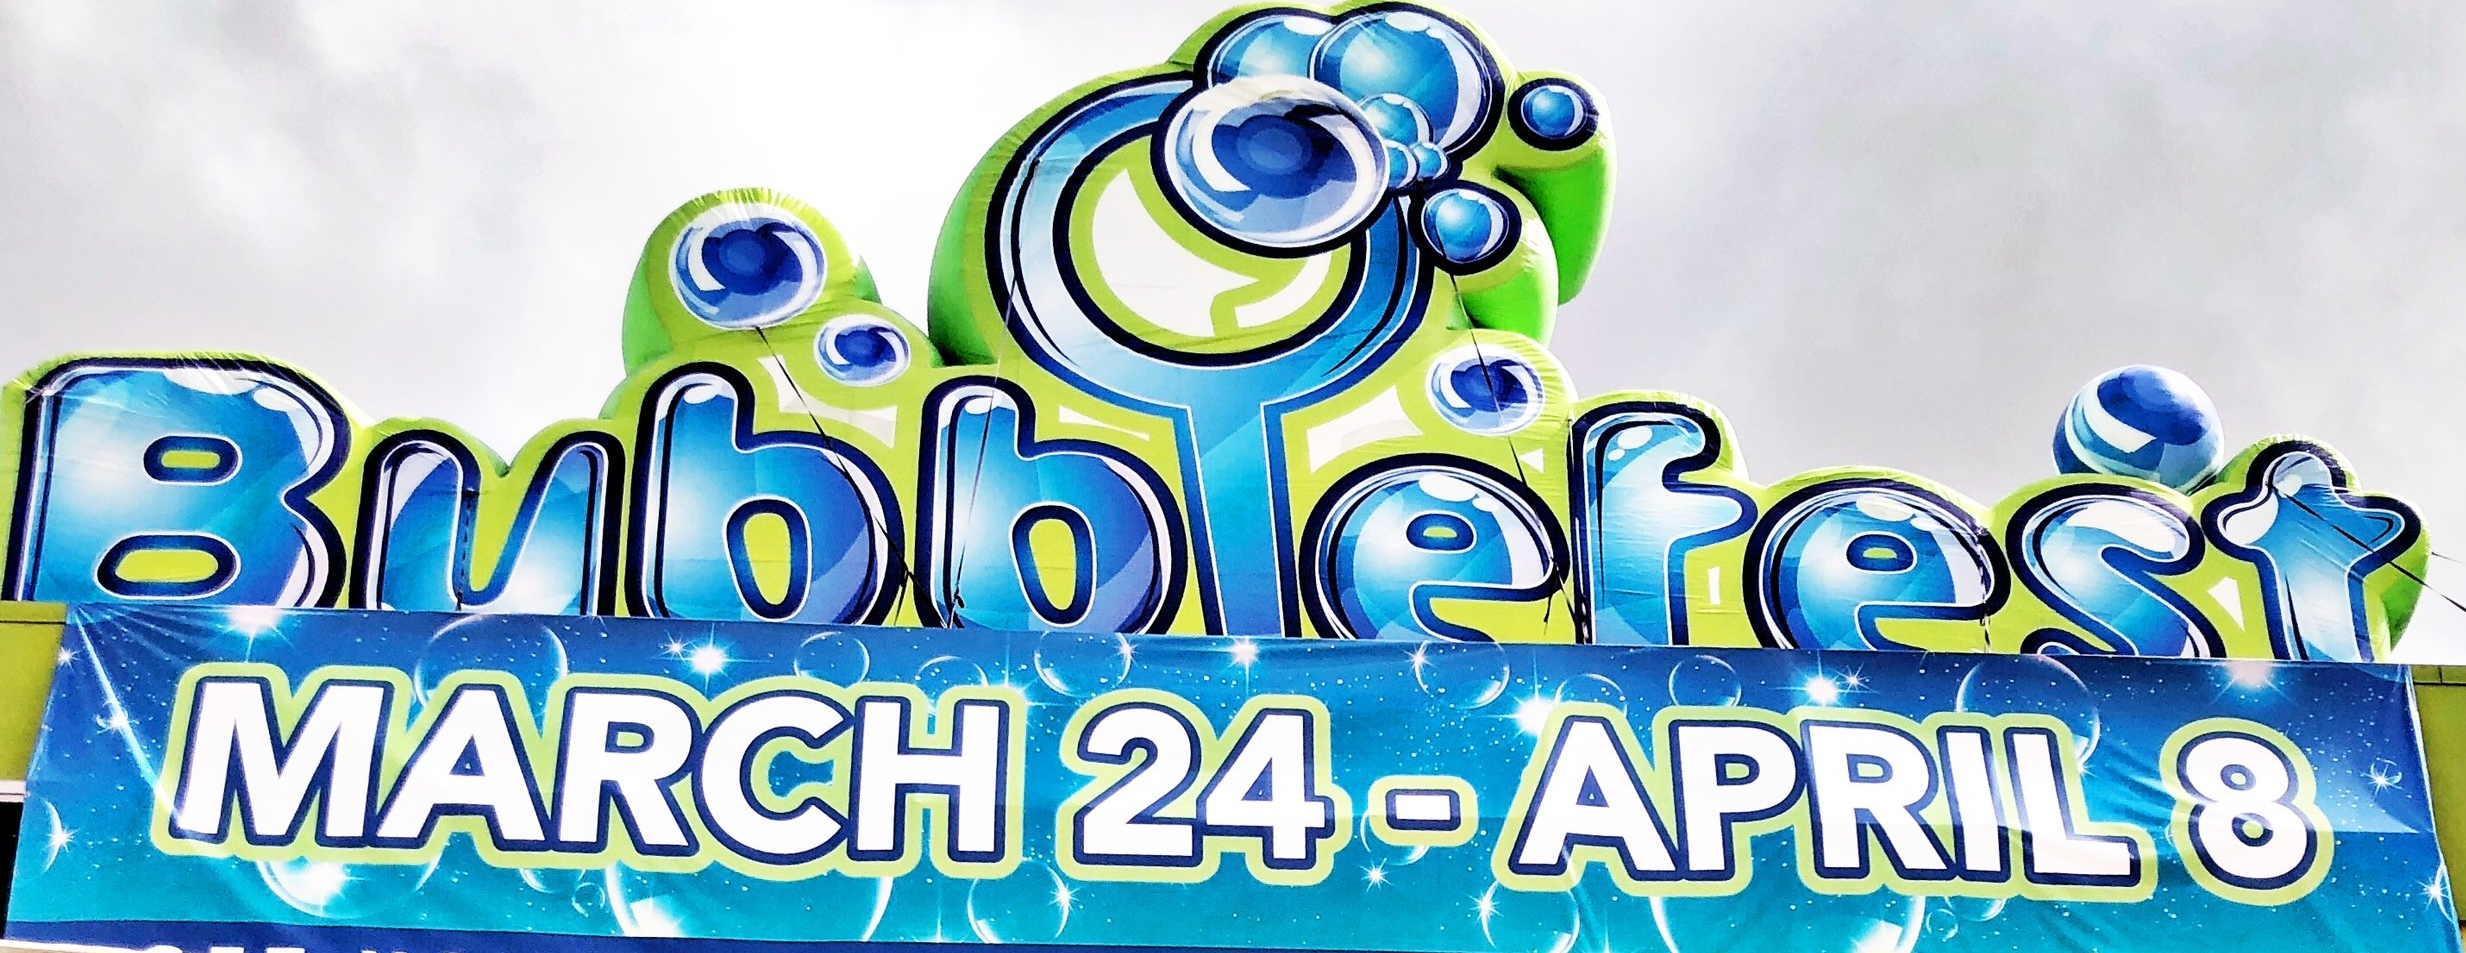 Bubblefest Sign view from I-5 freeway